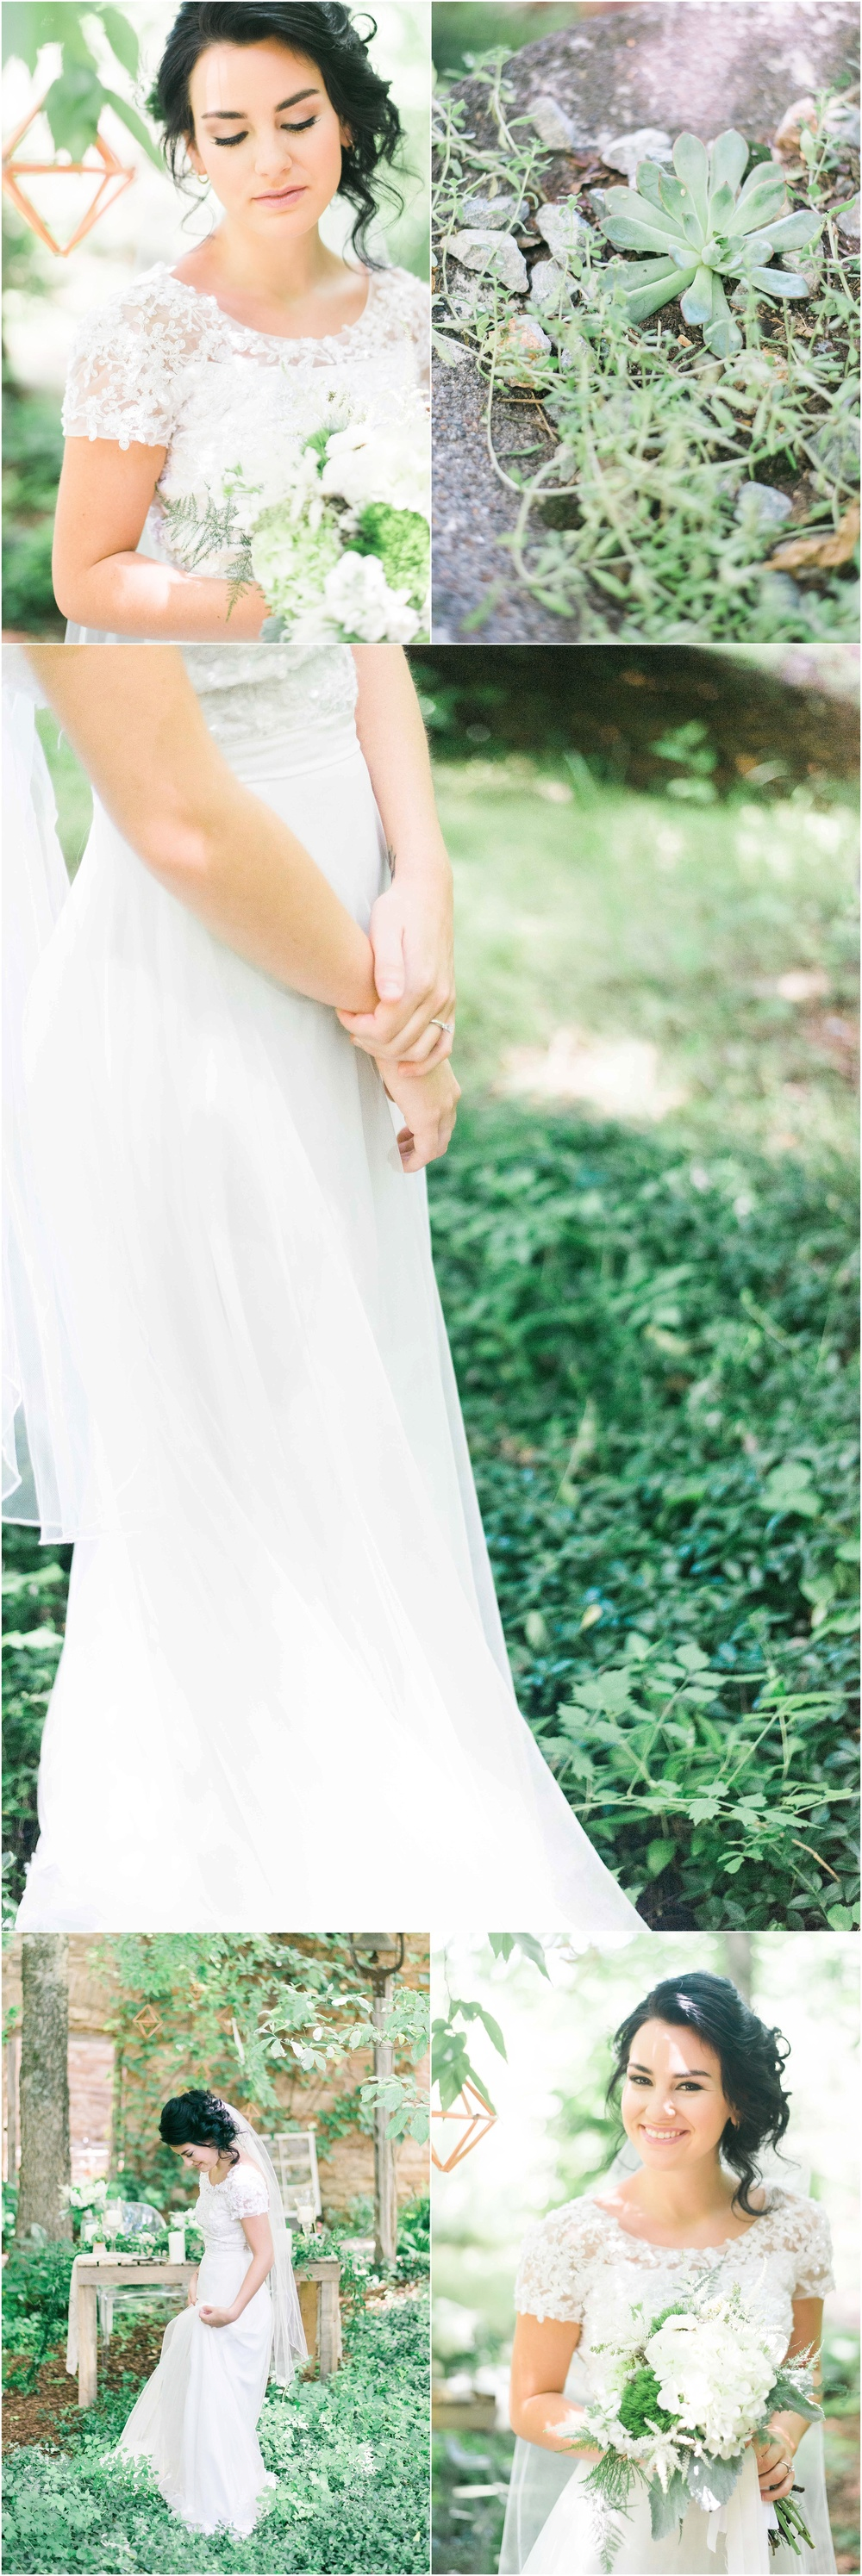 charlottesville_wedding Photographer_styled shoot_Style Me Pretty Feature